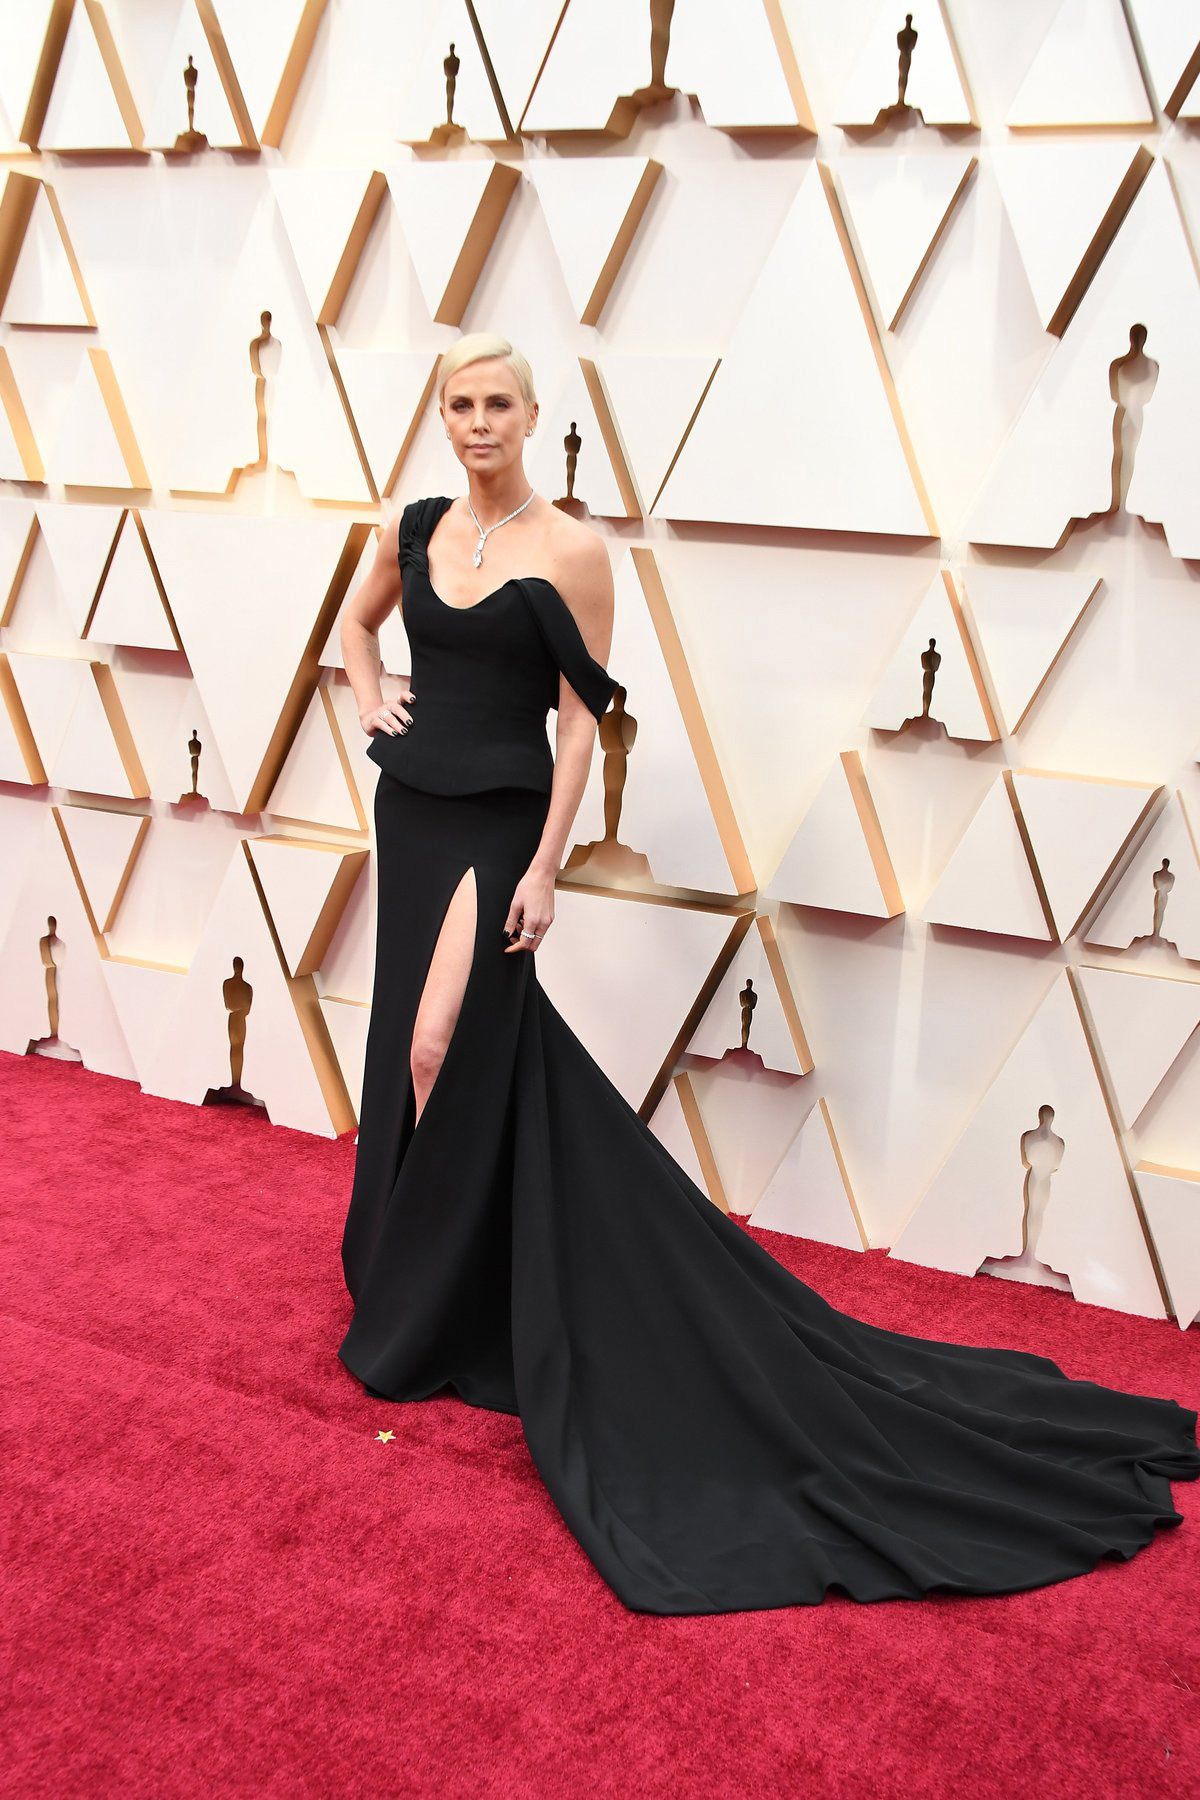 Charlize Theron in Dior. Getty Images / Sourced from Oscar.go.com